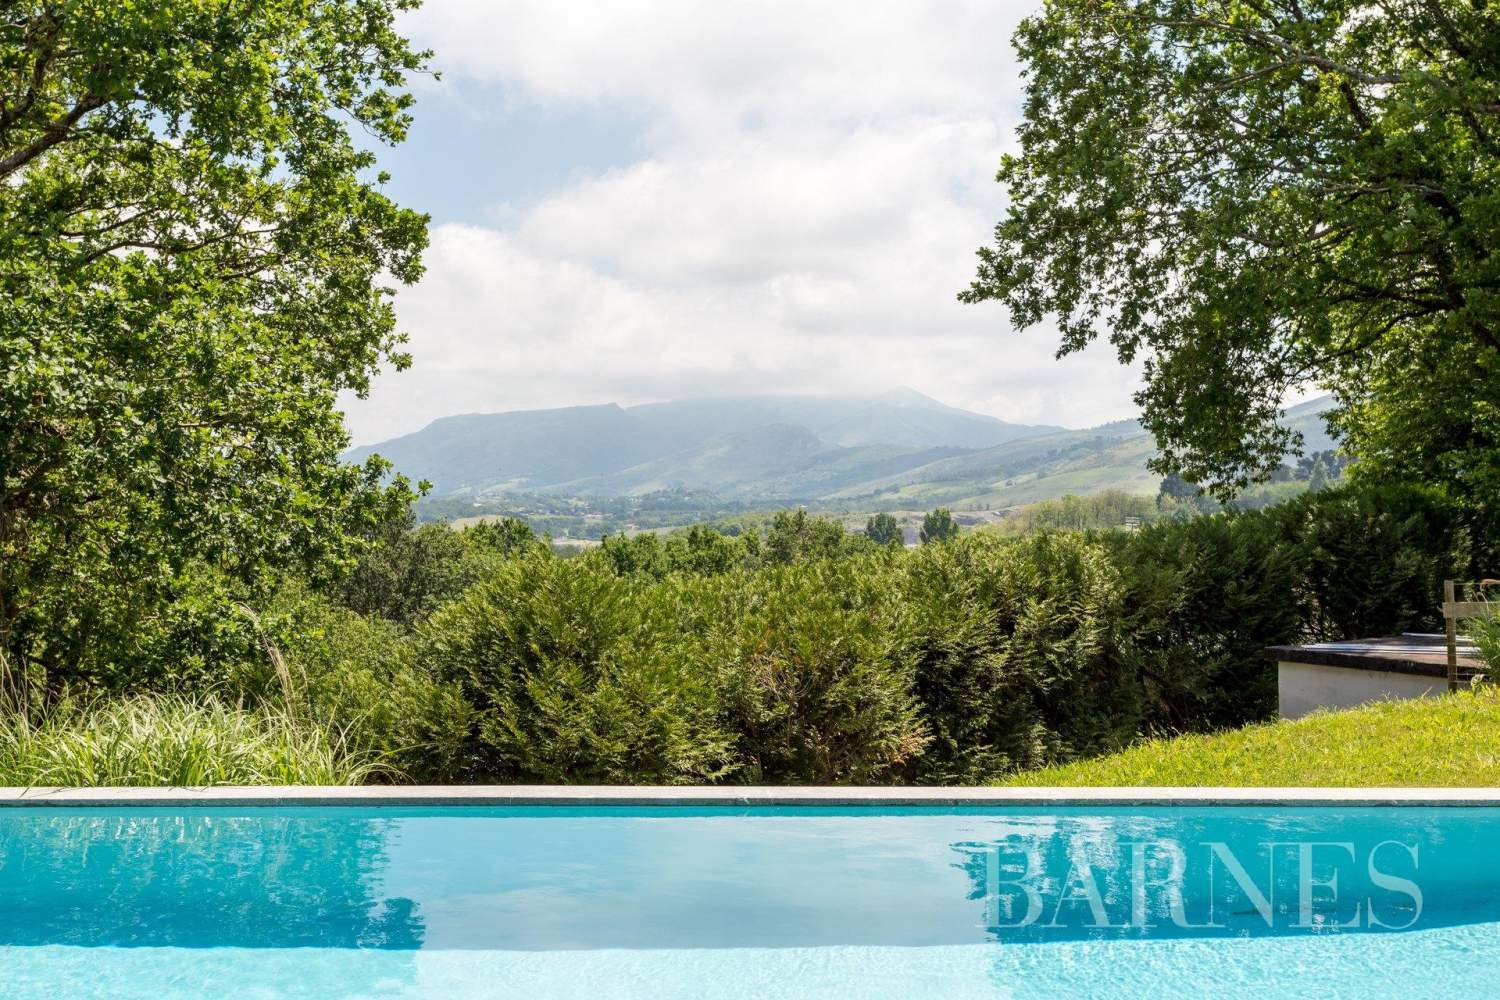 URRUGNE, LARGE HOUSE WITH A POOL AND MOUNTAINS VIEW, UP TO 17 PEOPLE picture 3